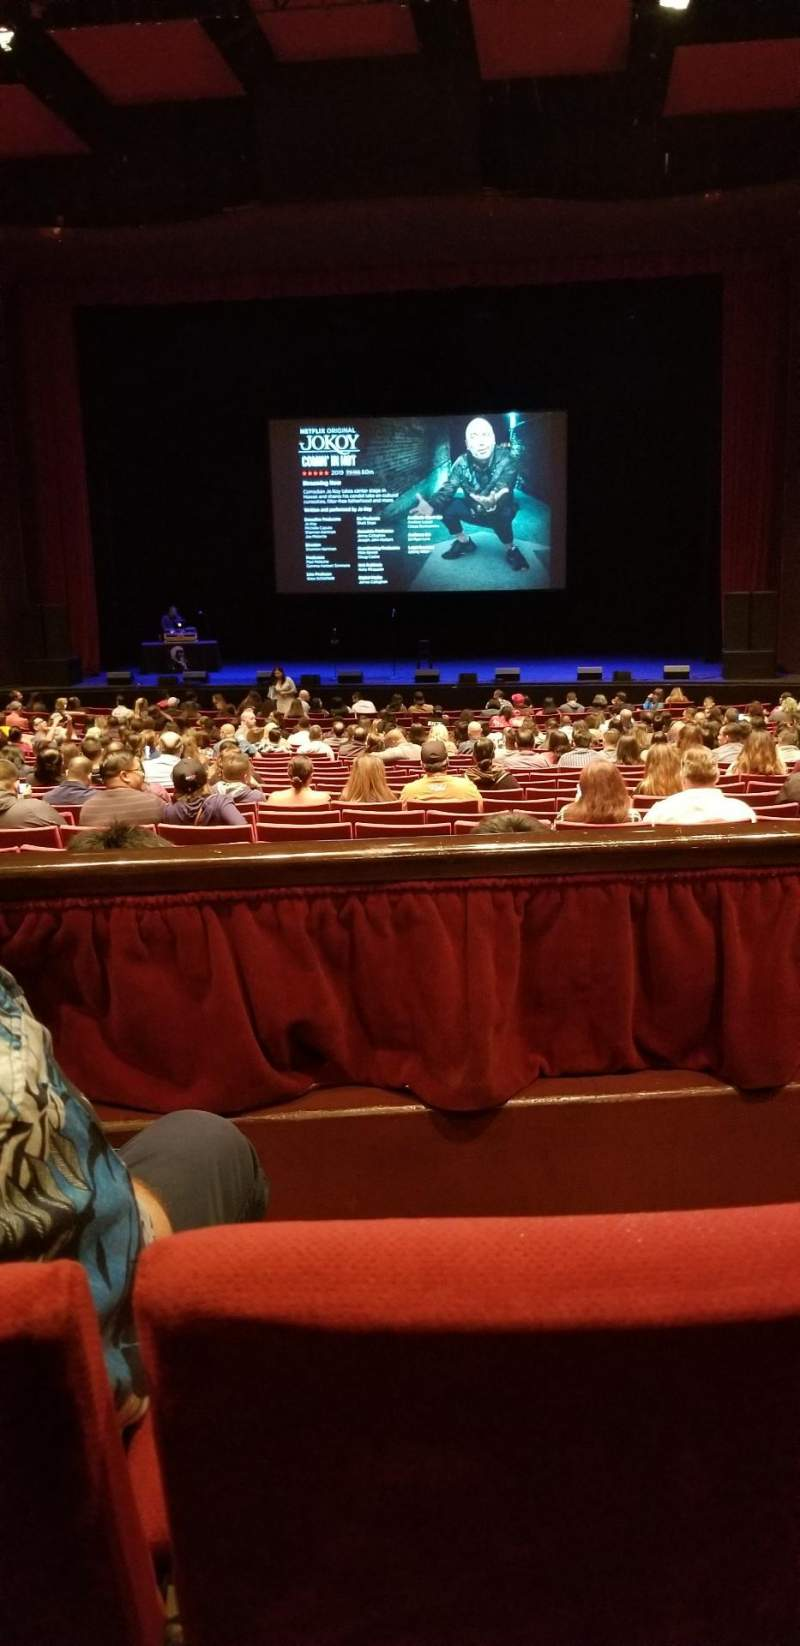 Seating view for San Diego Civic Theatre Section Dress circle Row B Seat 14